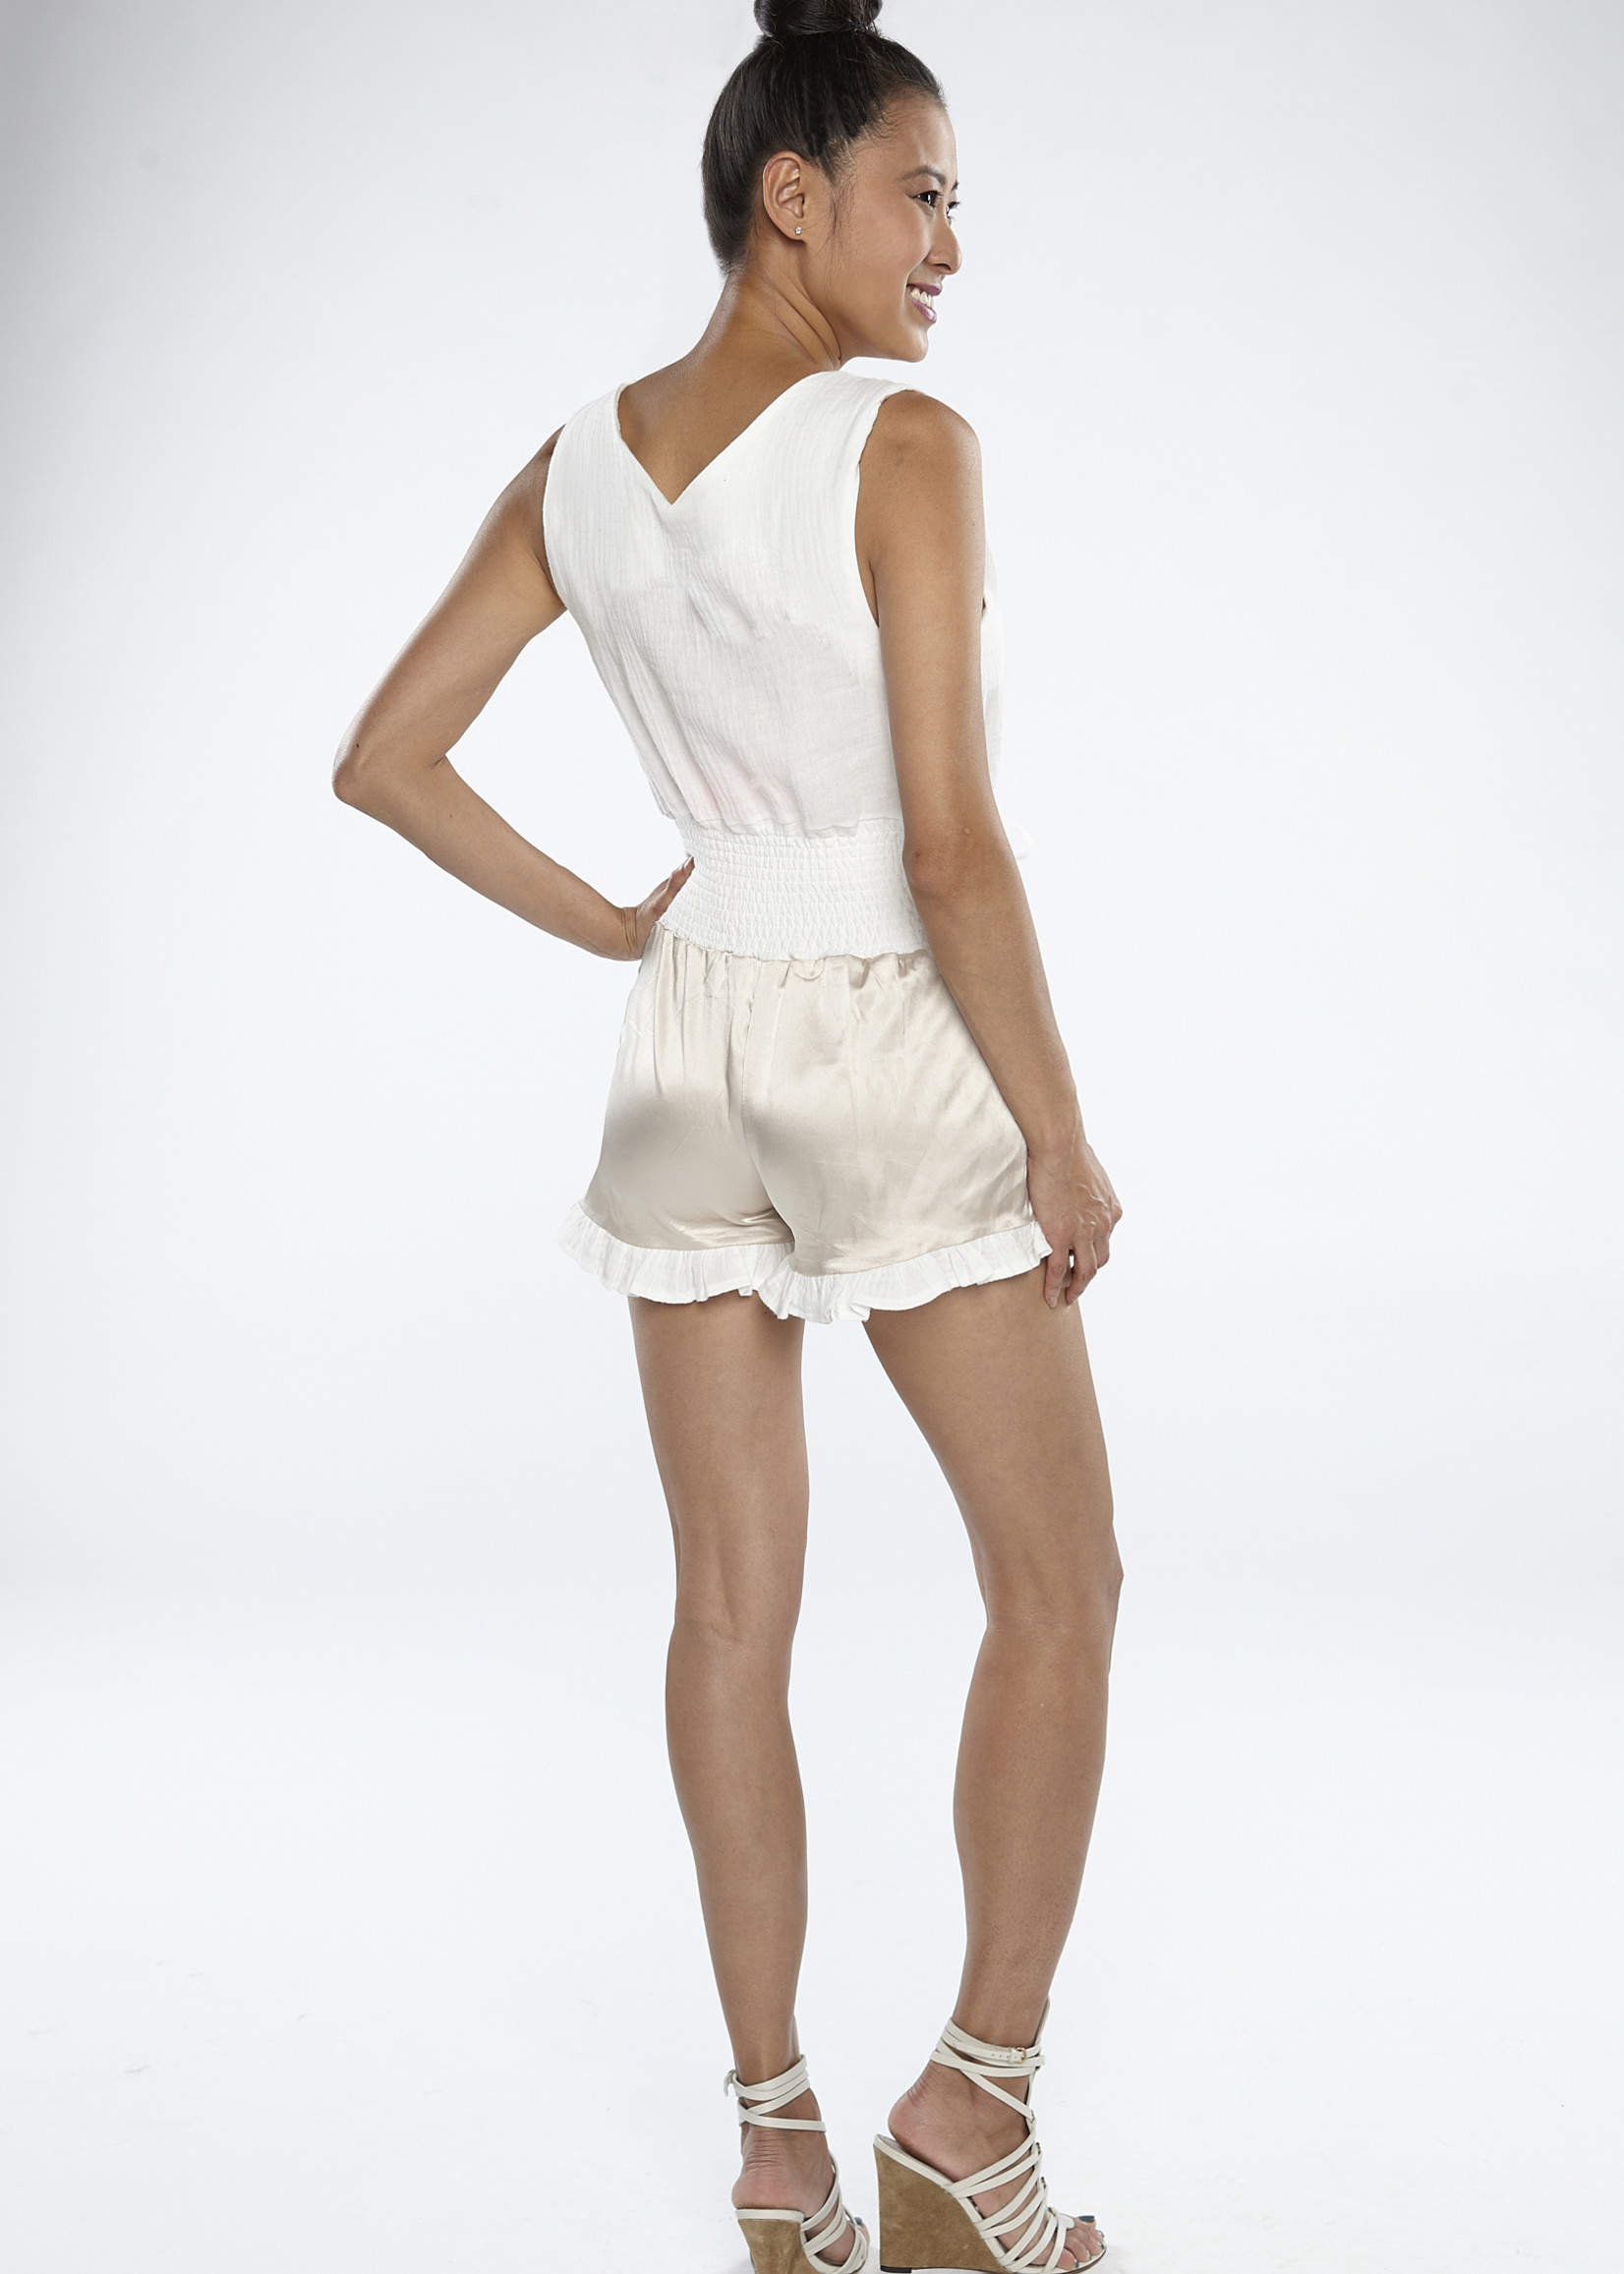 House of Wallace Chantal Romper